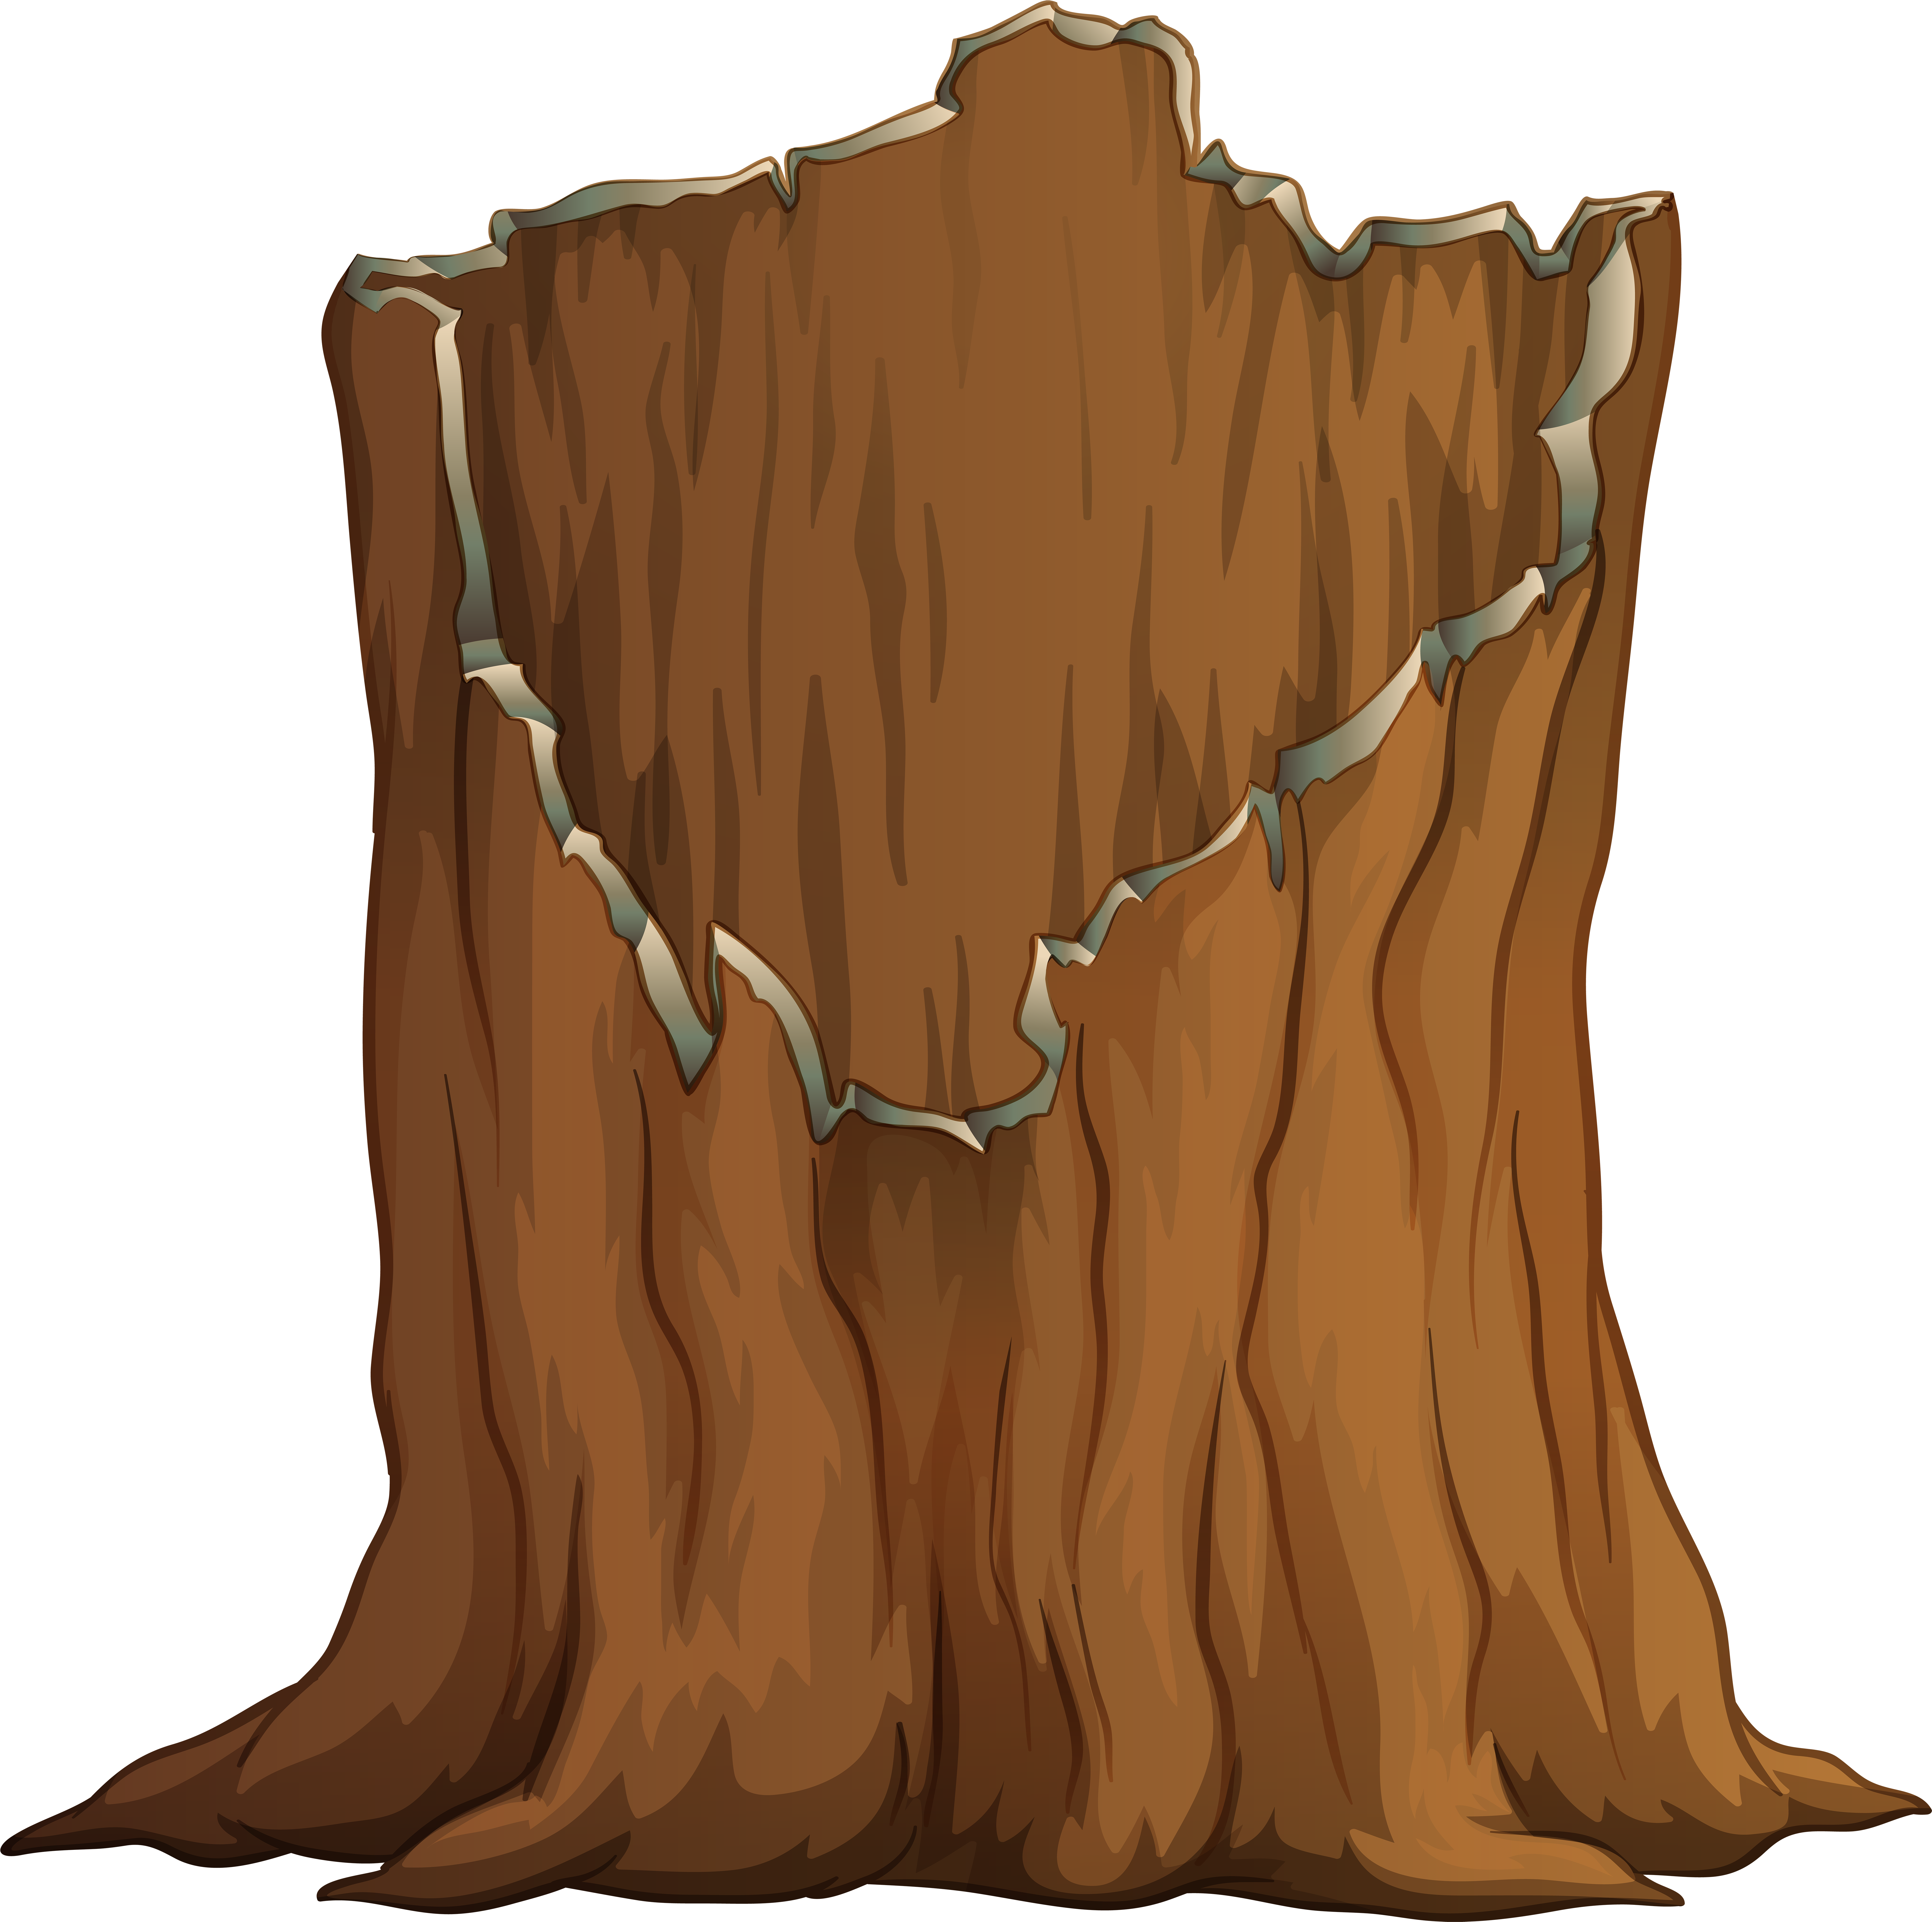 Tree Trunk Clipart - Png Download - Full Size Clipart ...